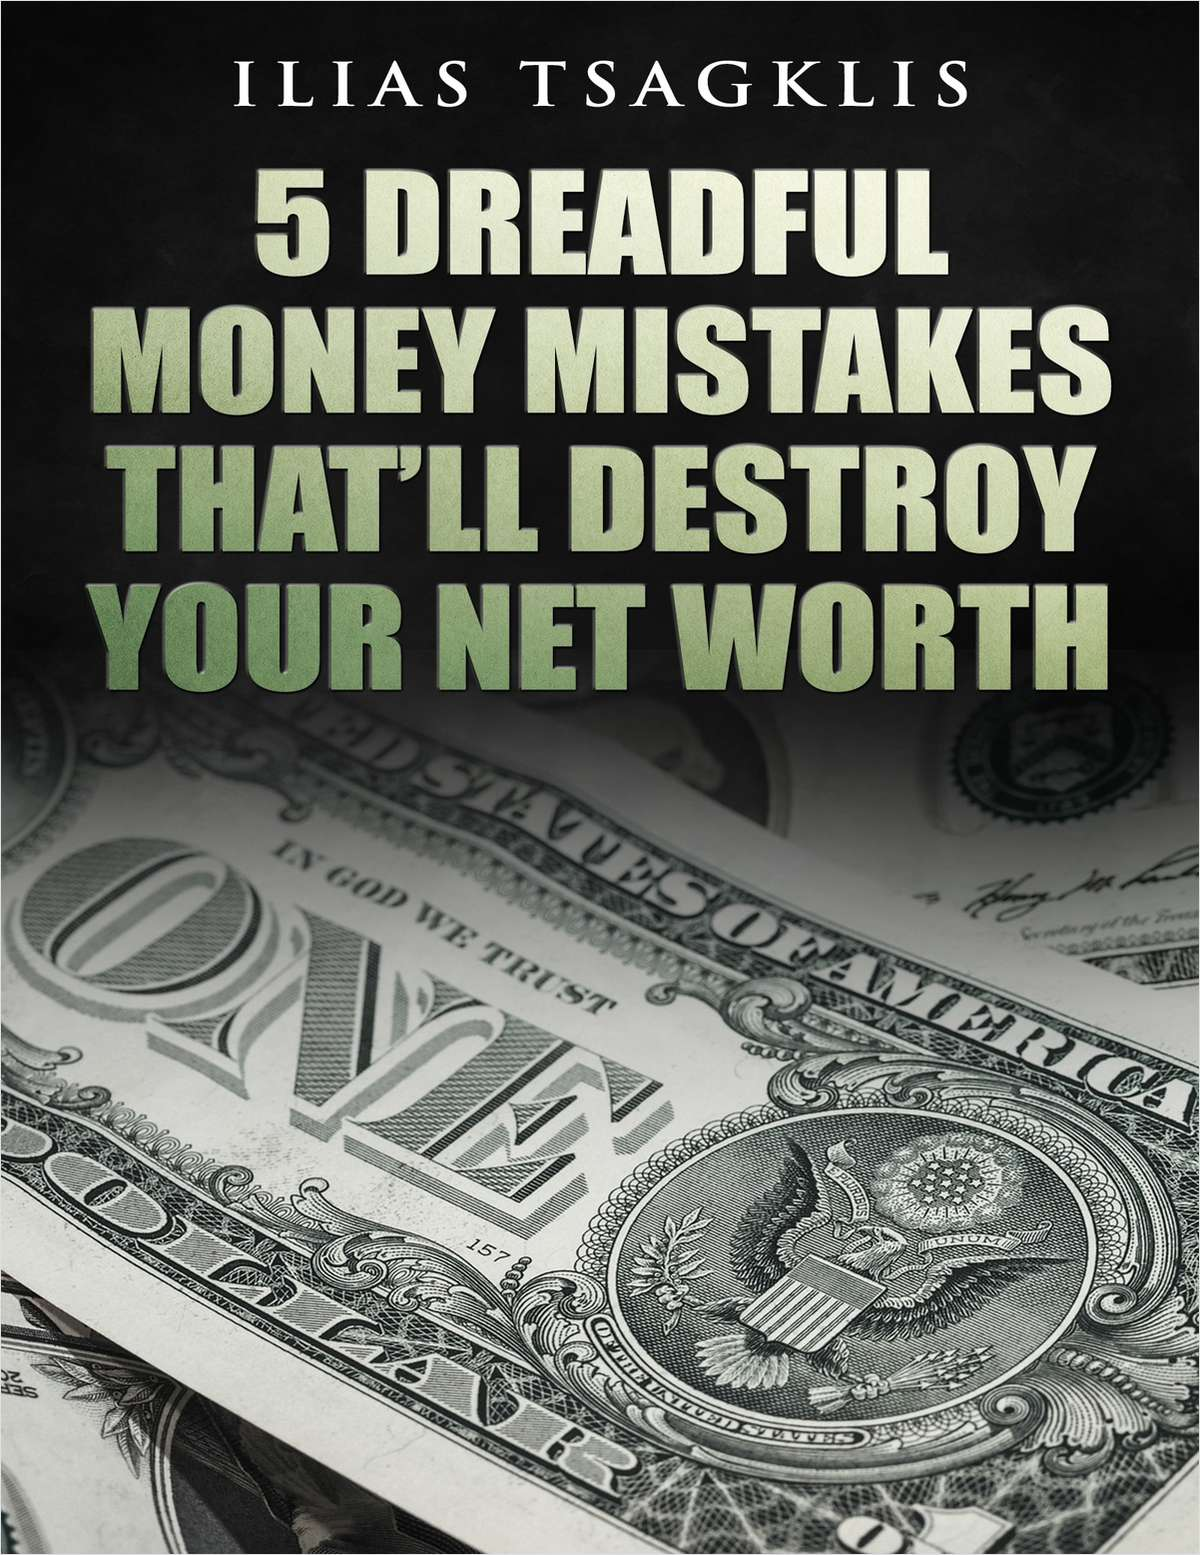 5 Dreadful Money Mistakes That'll Destroy Your Net Worth